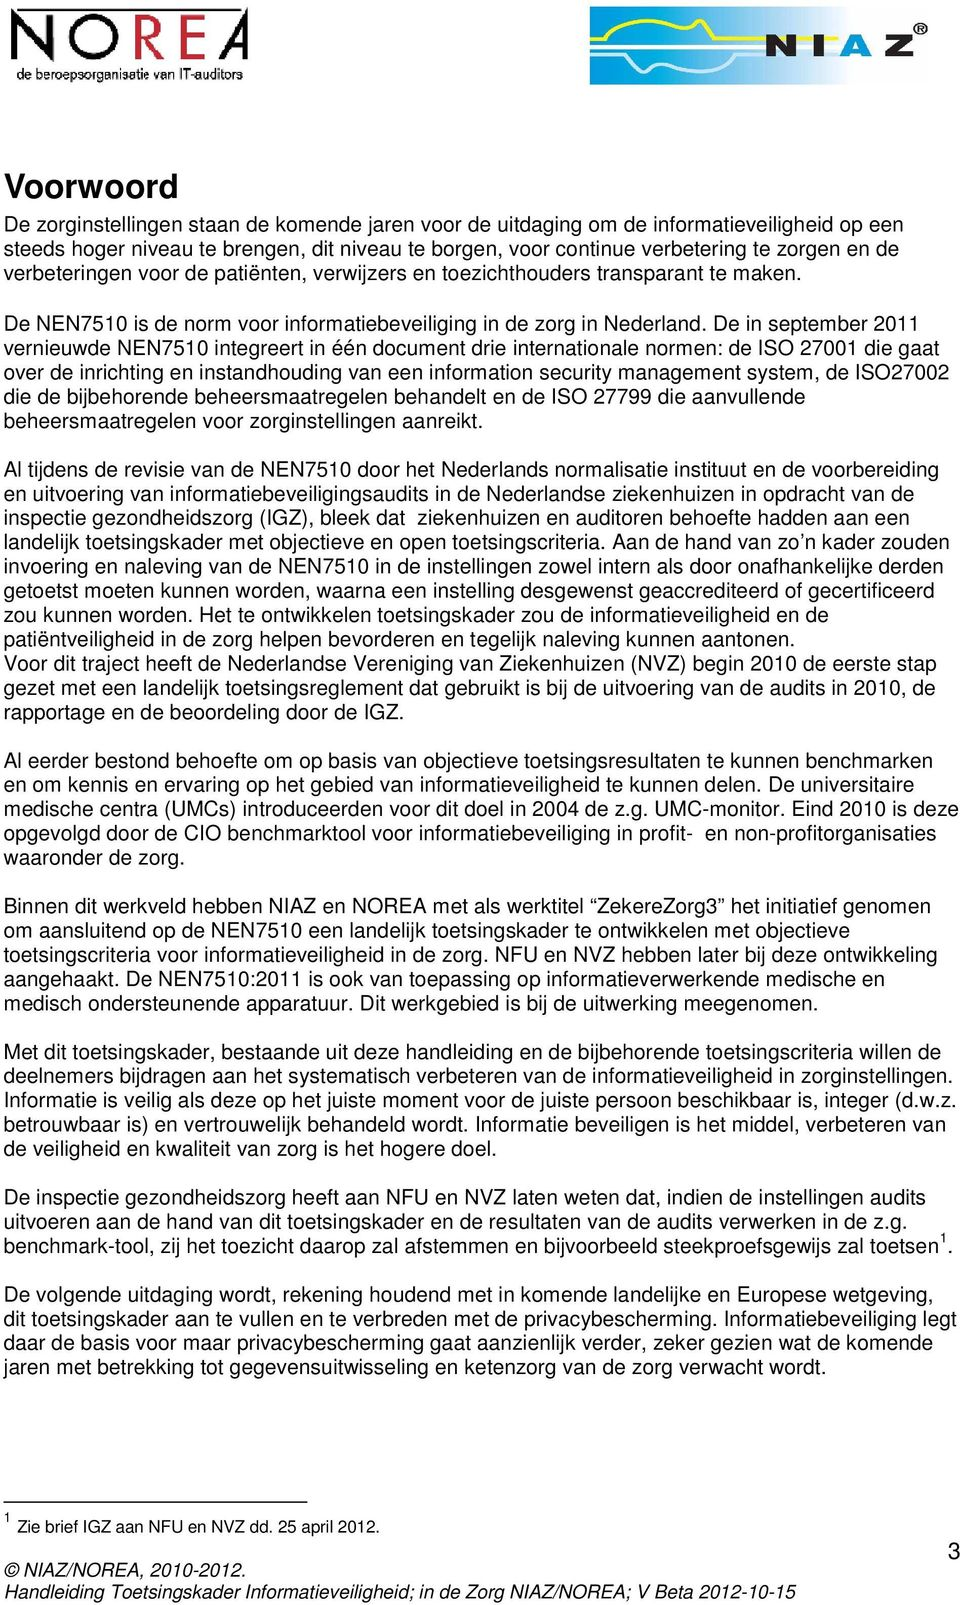 De in september 2011 vernieuwde NEN7510 integreert in één document drie internationale normen: de ISO 27001 die gaat over de inrichting en instandhouding van een information security management